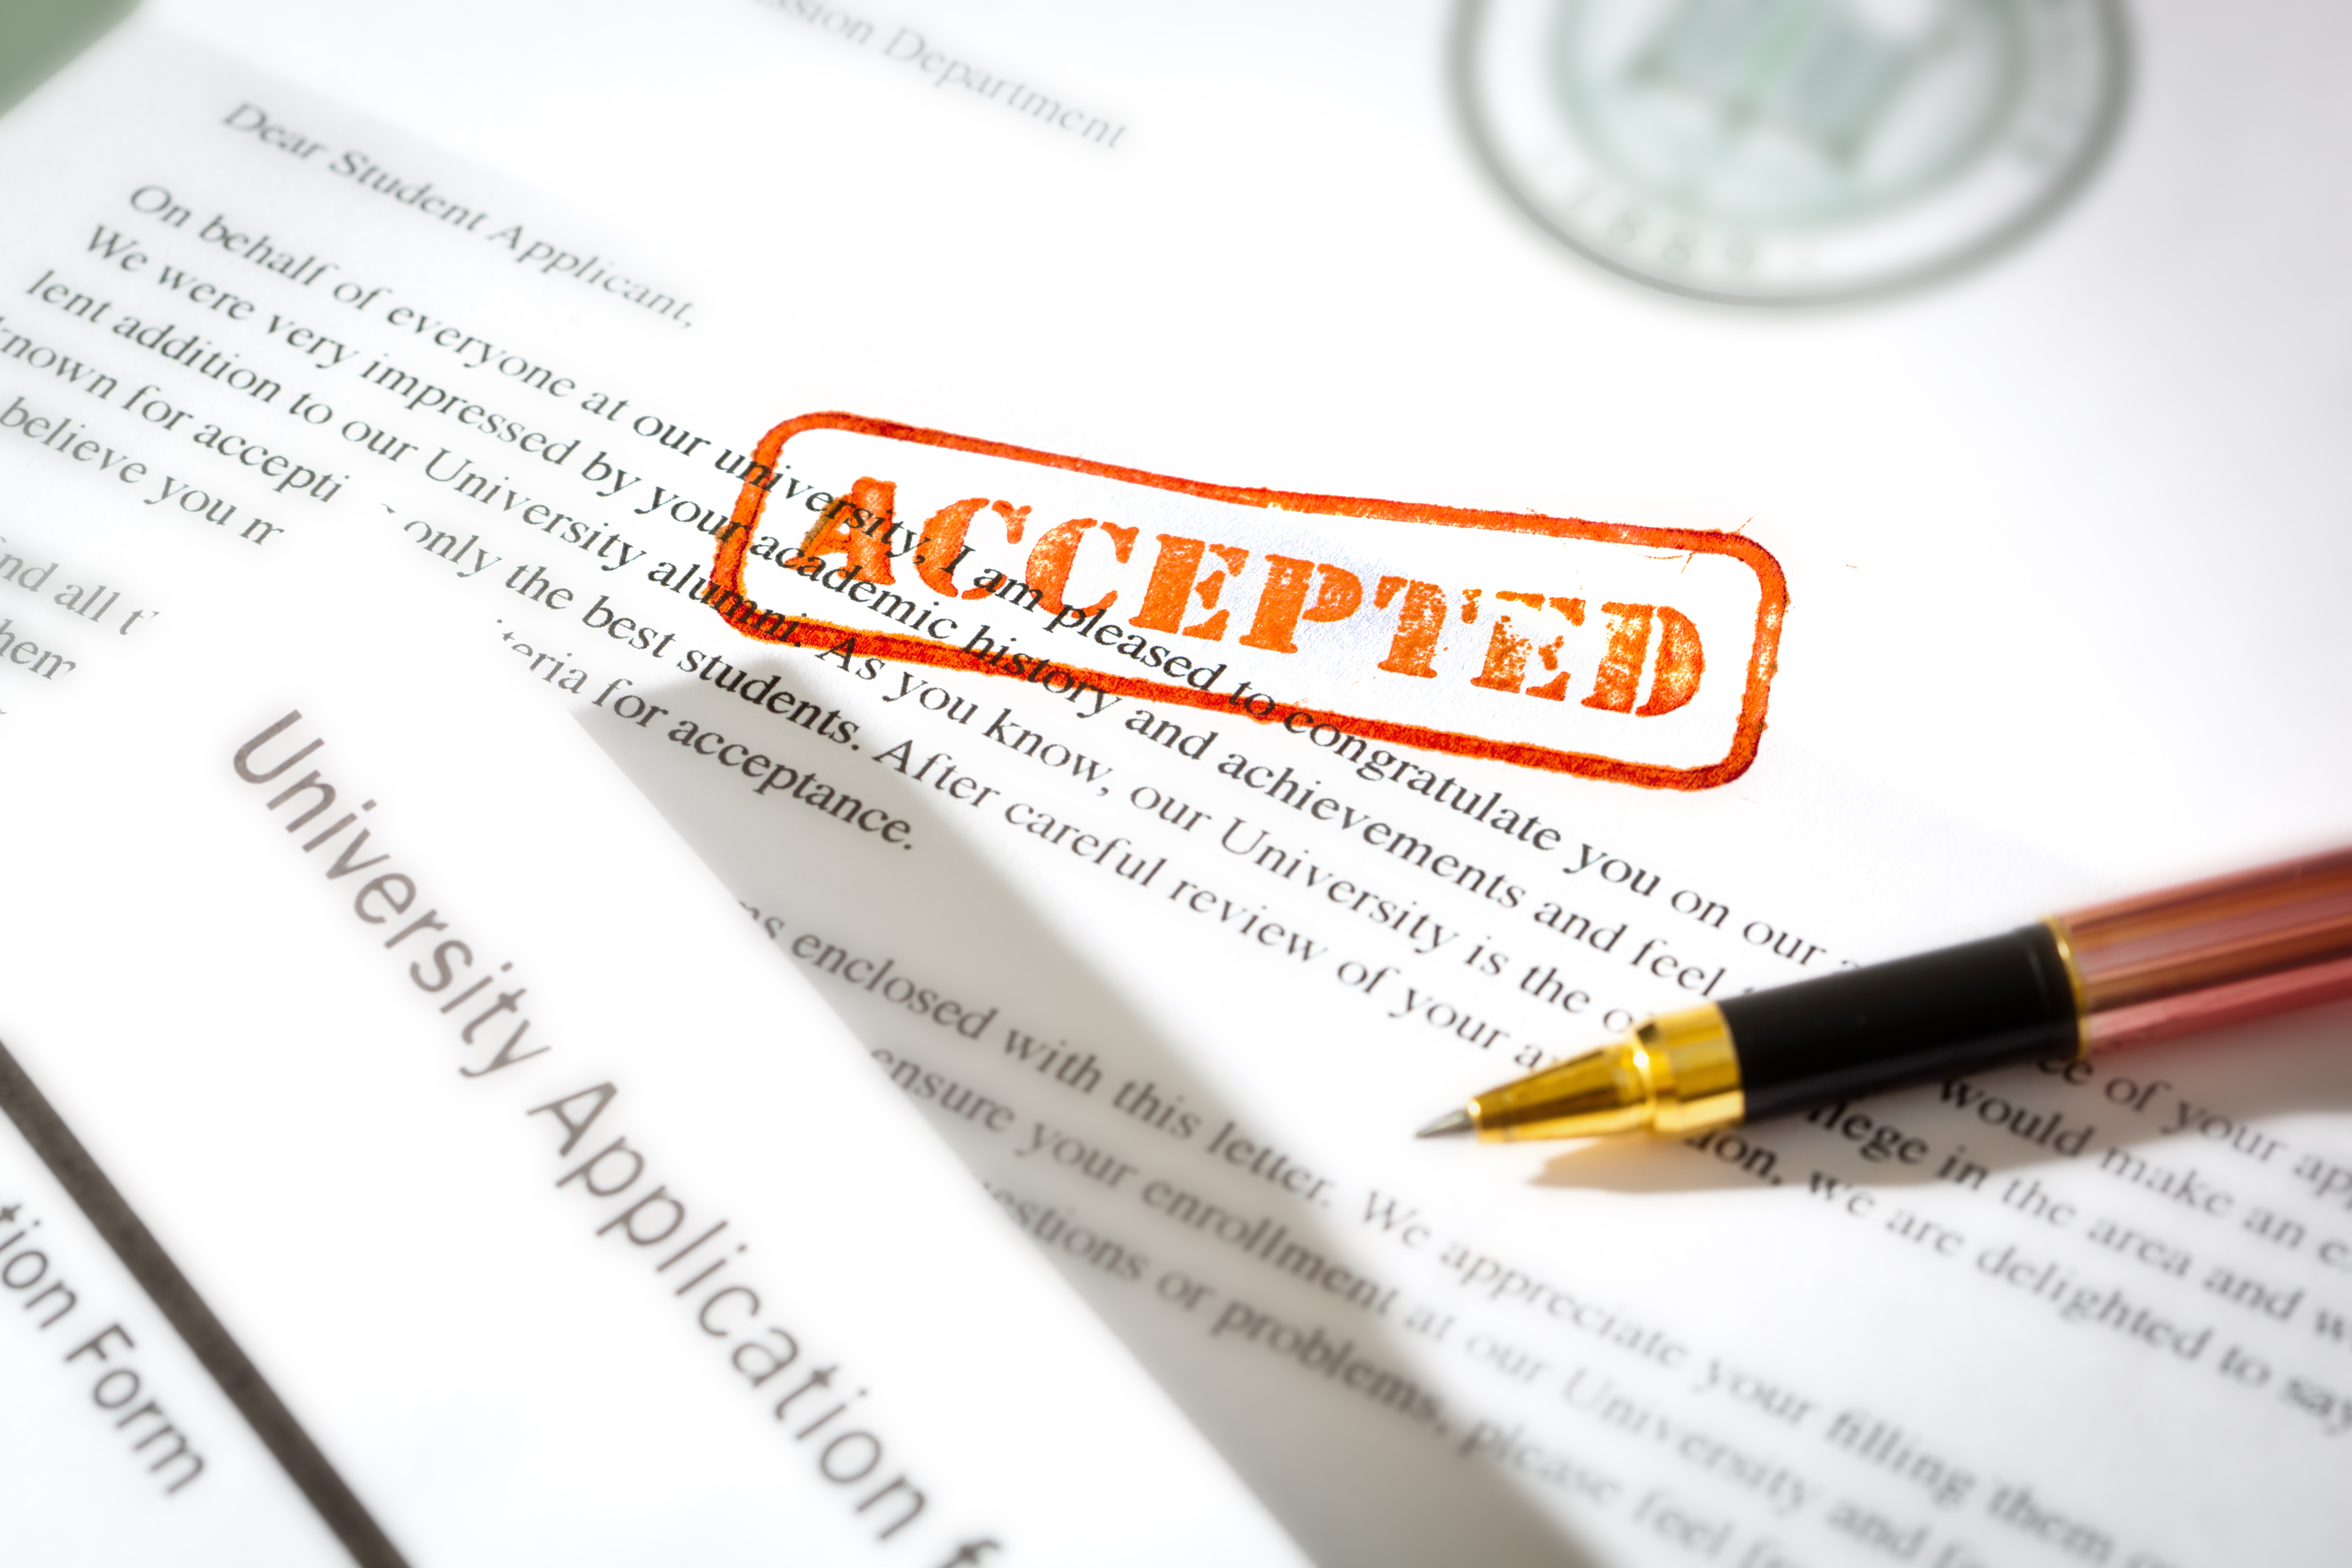 University Application Acceptance Notification Letter with ACCEPTED Stamp